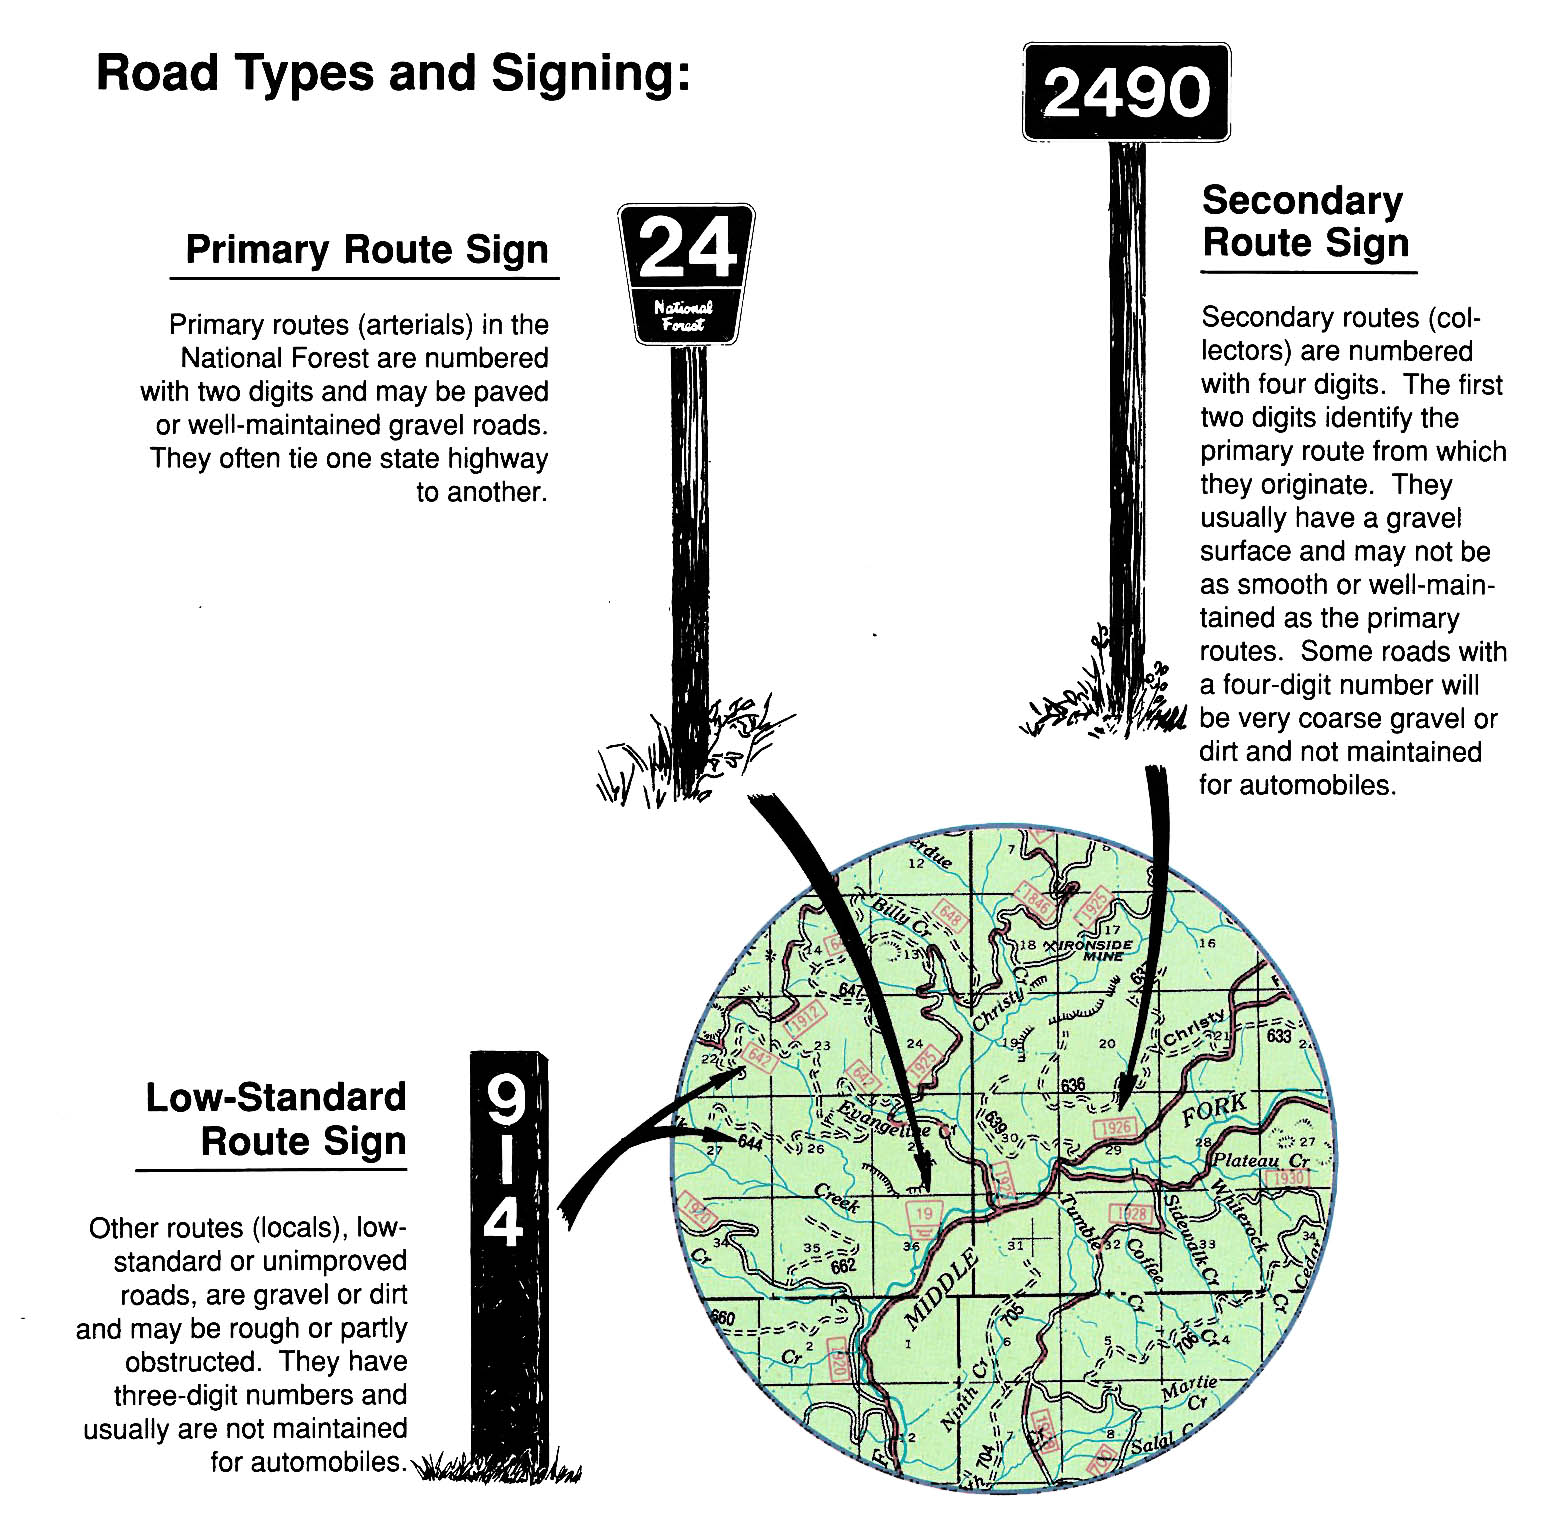 An illustration showing the different types and signs of National Forest Roads